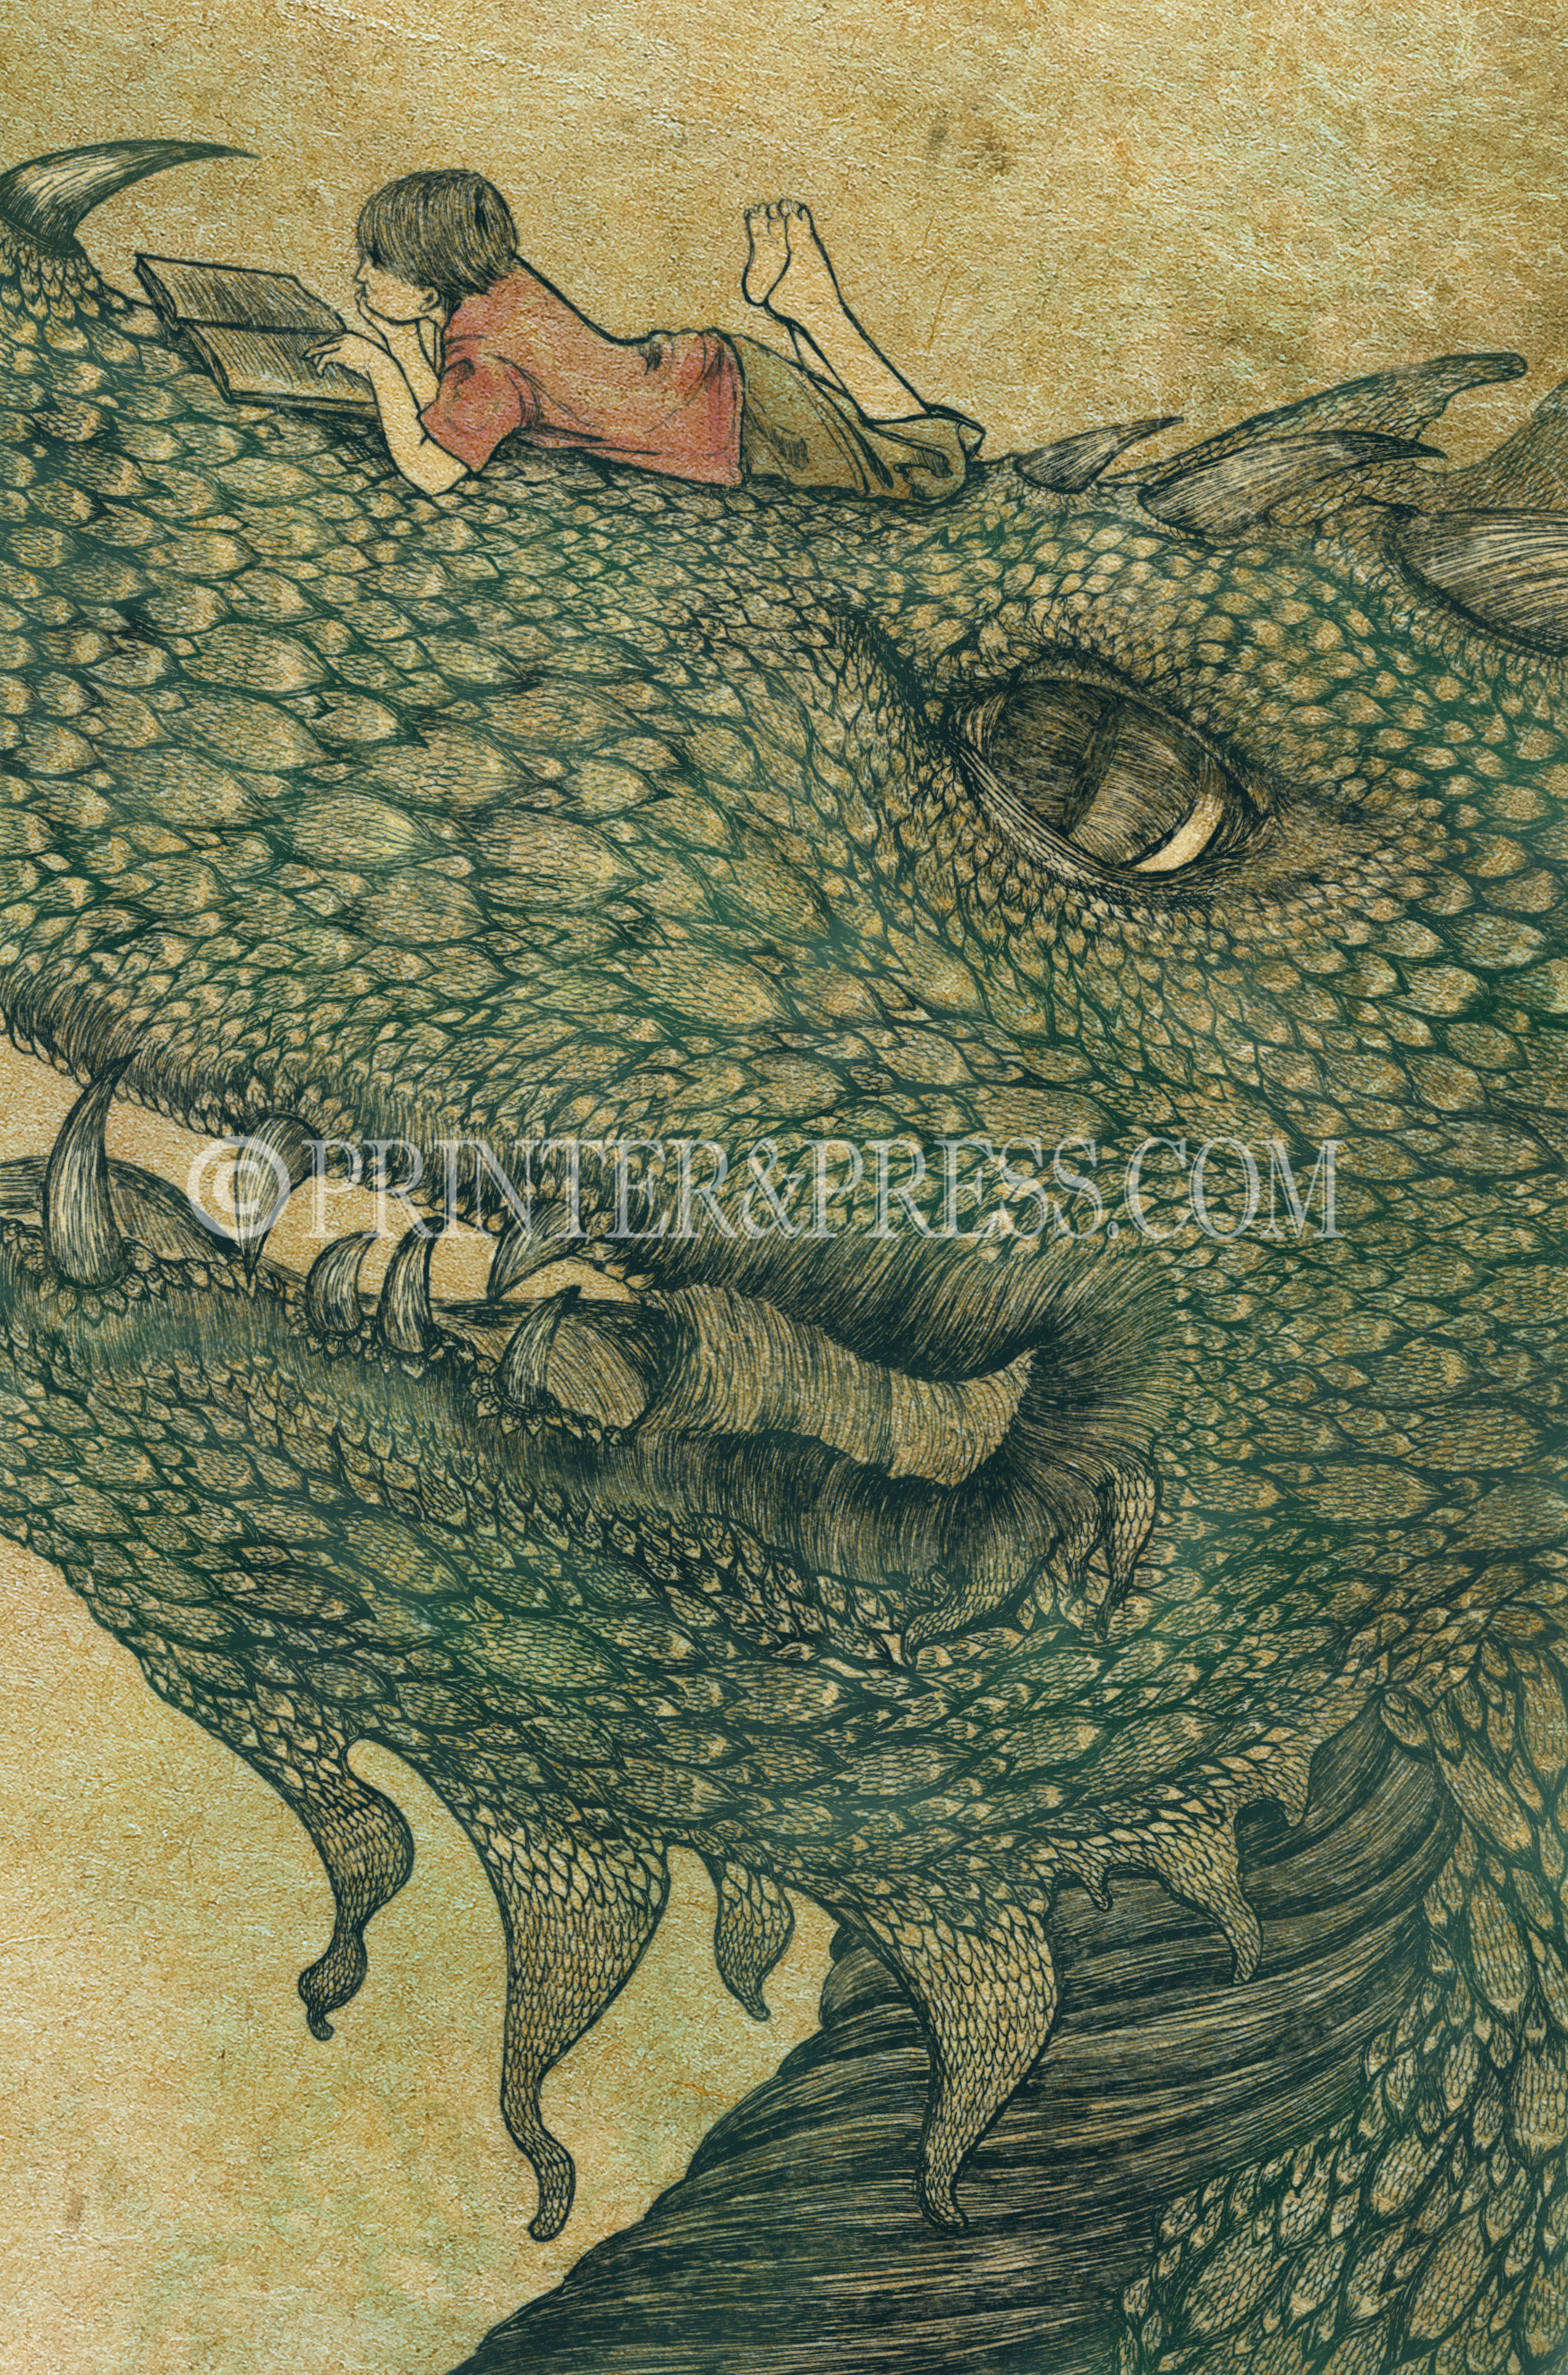 This print was inspired by my love for dragons and for reading. I made this image of a small boy reading on the dragon also to echo my memories of my twin brother who was always always reading as a kid.